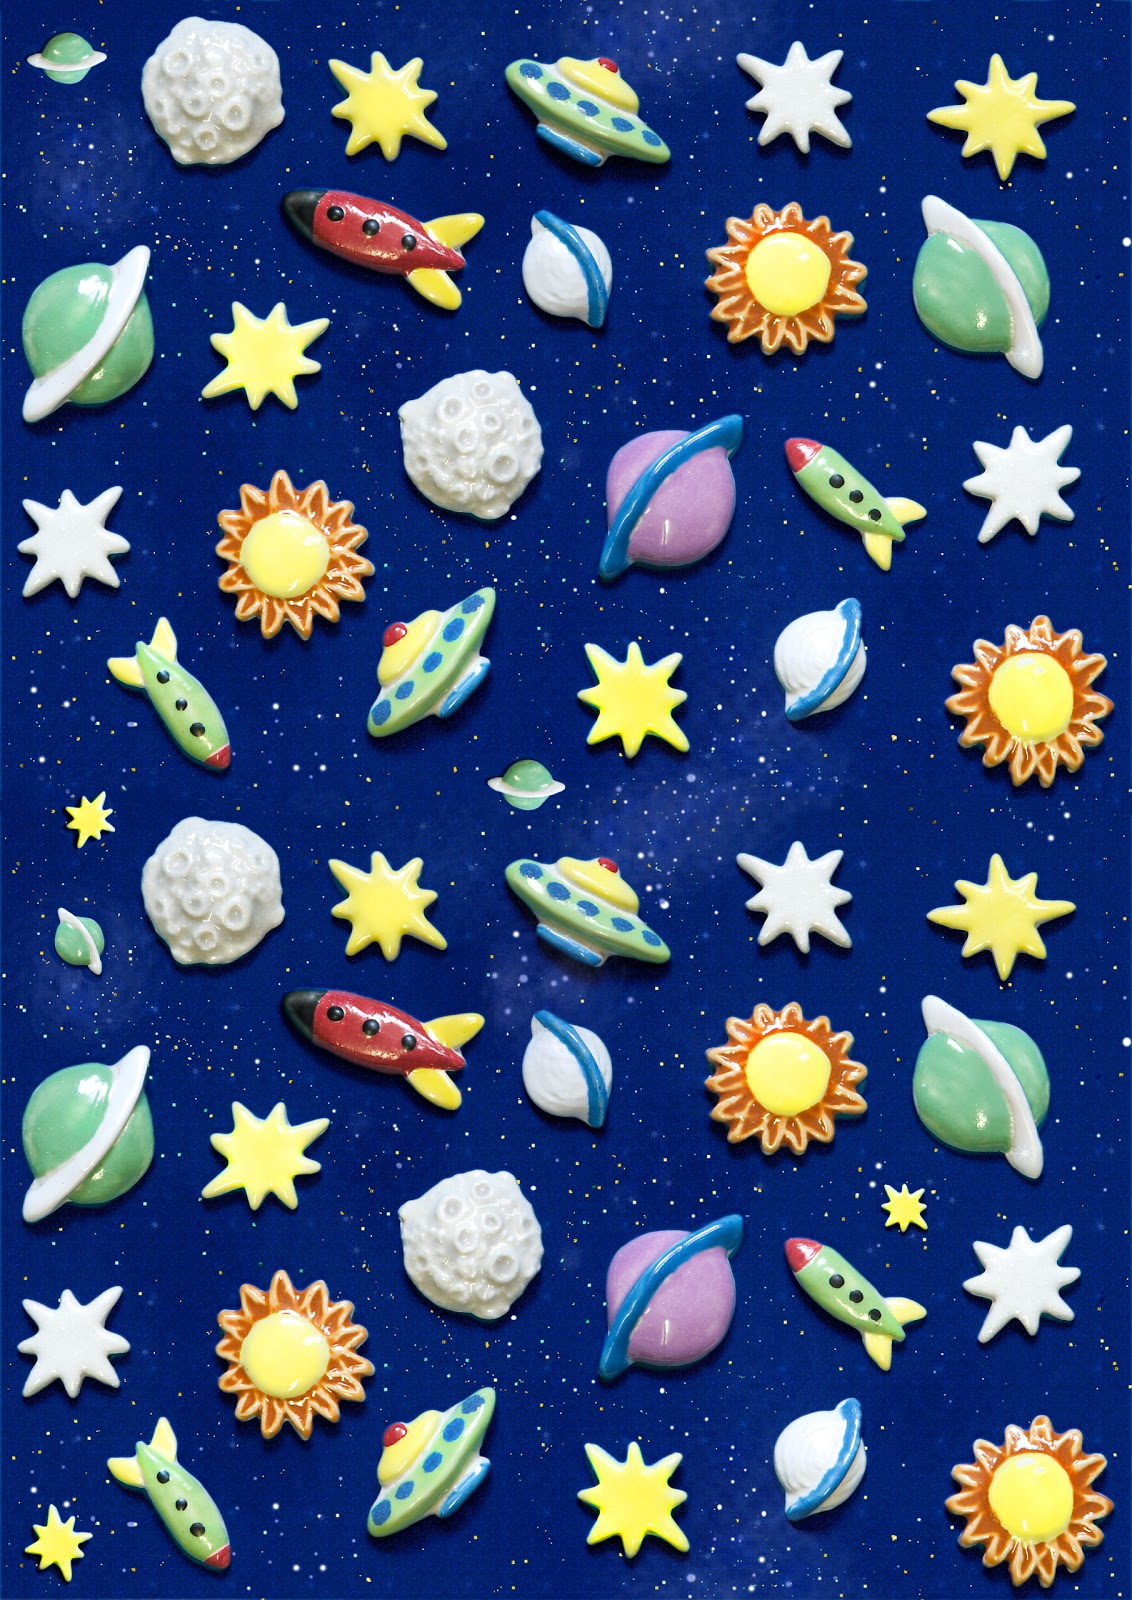 Buttonmad fabric and button winners for 3d space fabric